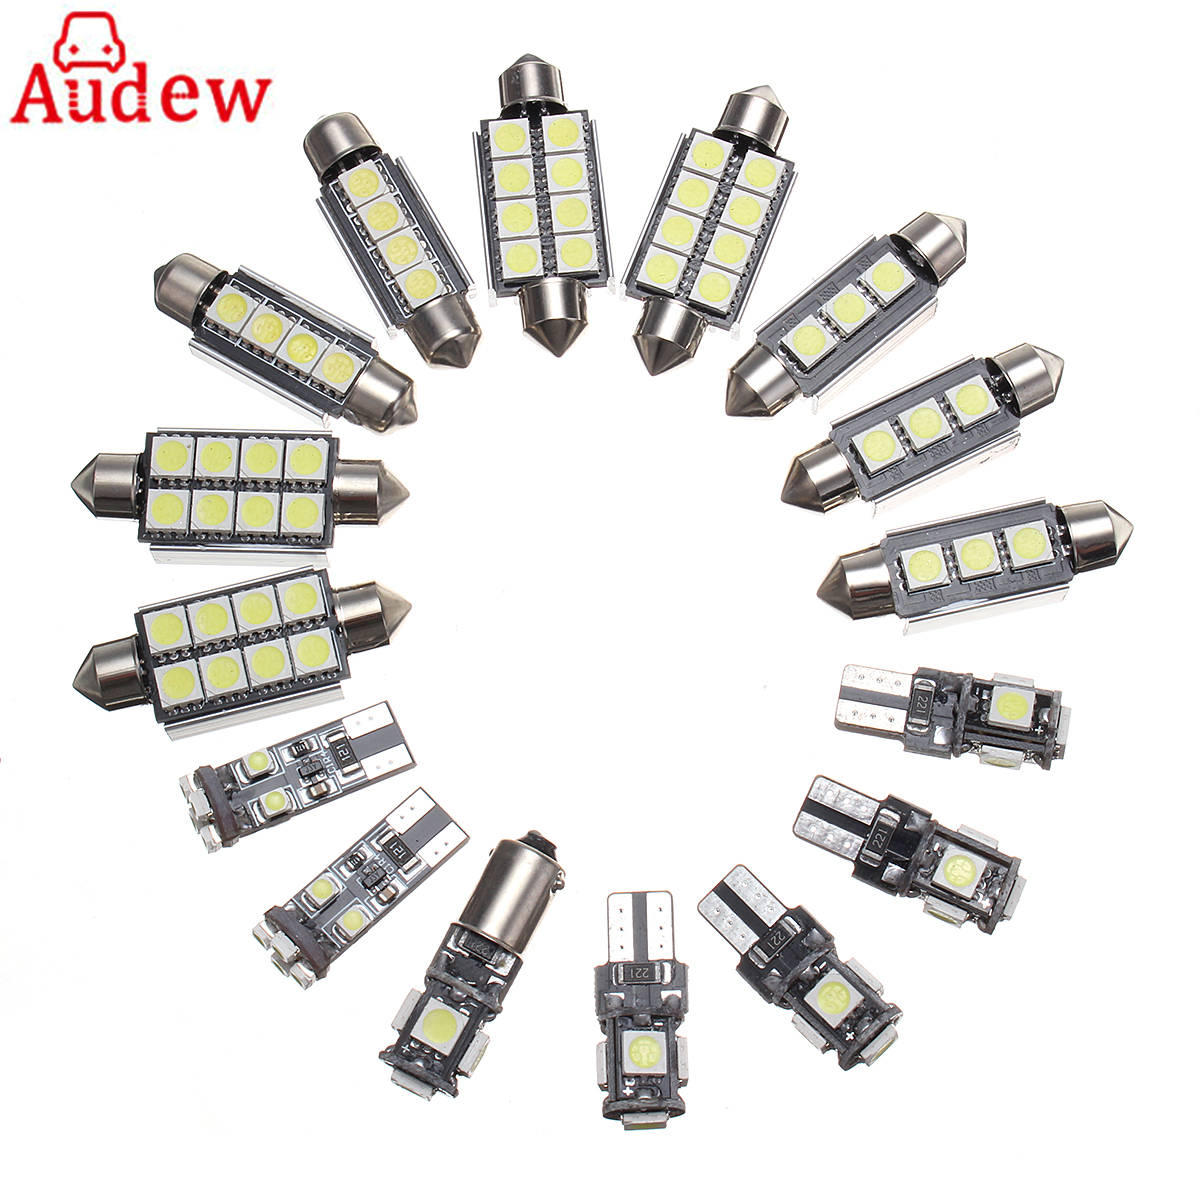 20pcs white Car Interior lamp LED canbus Light Kit With Tool for Audi A4 S4 B8 avant 2009-2015 серьги page 3